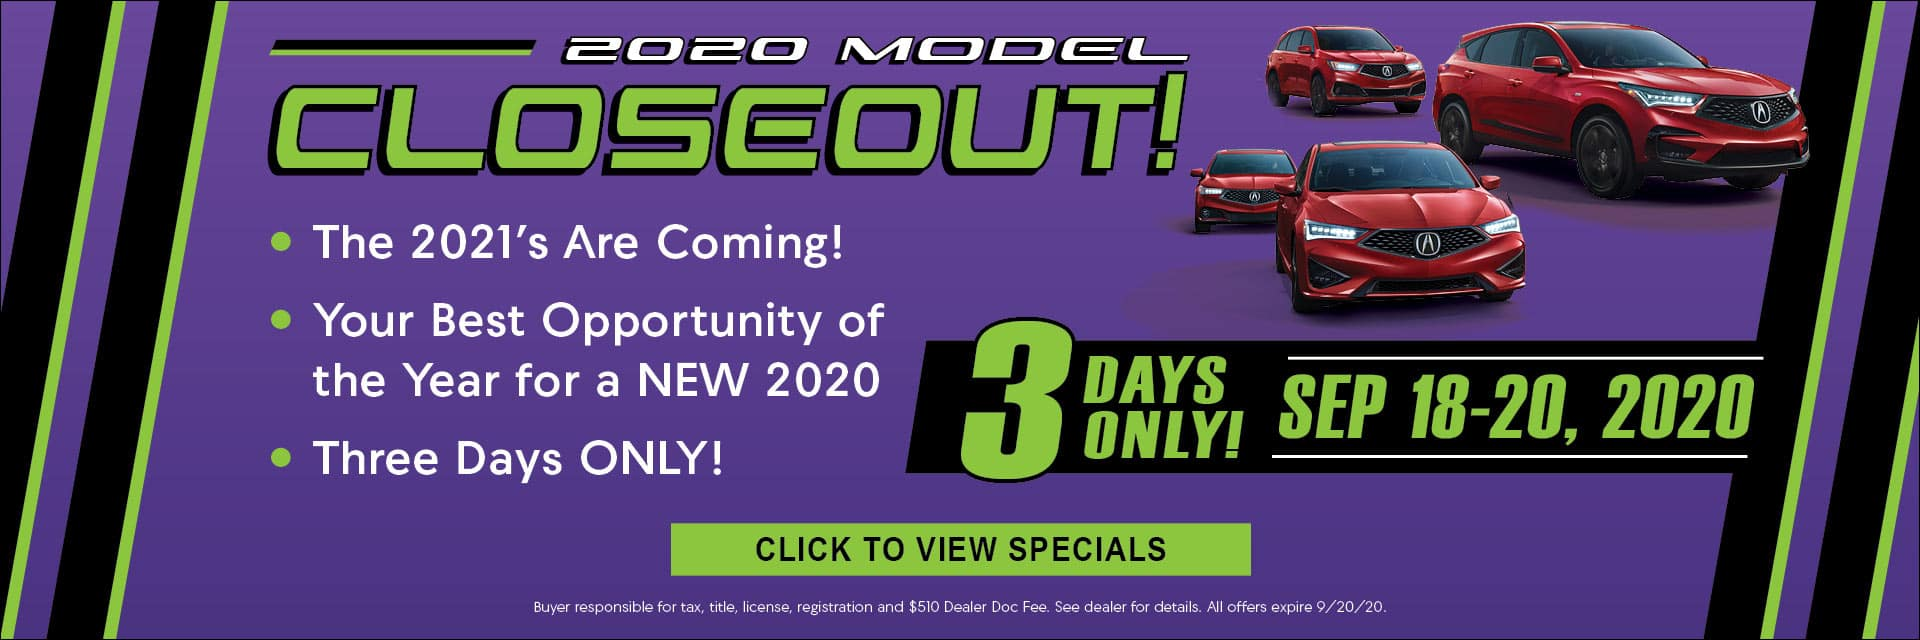 2020 Model Closeout